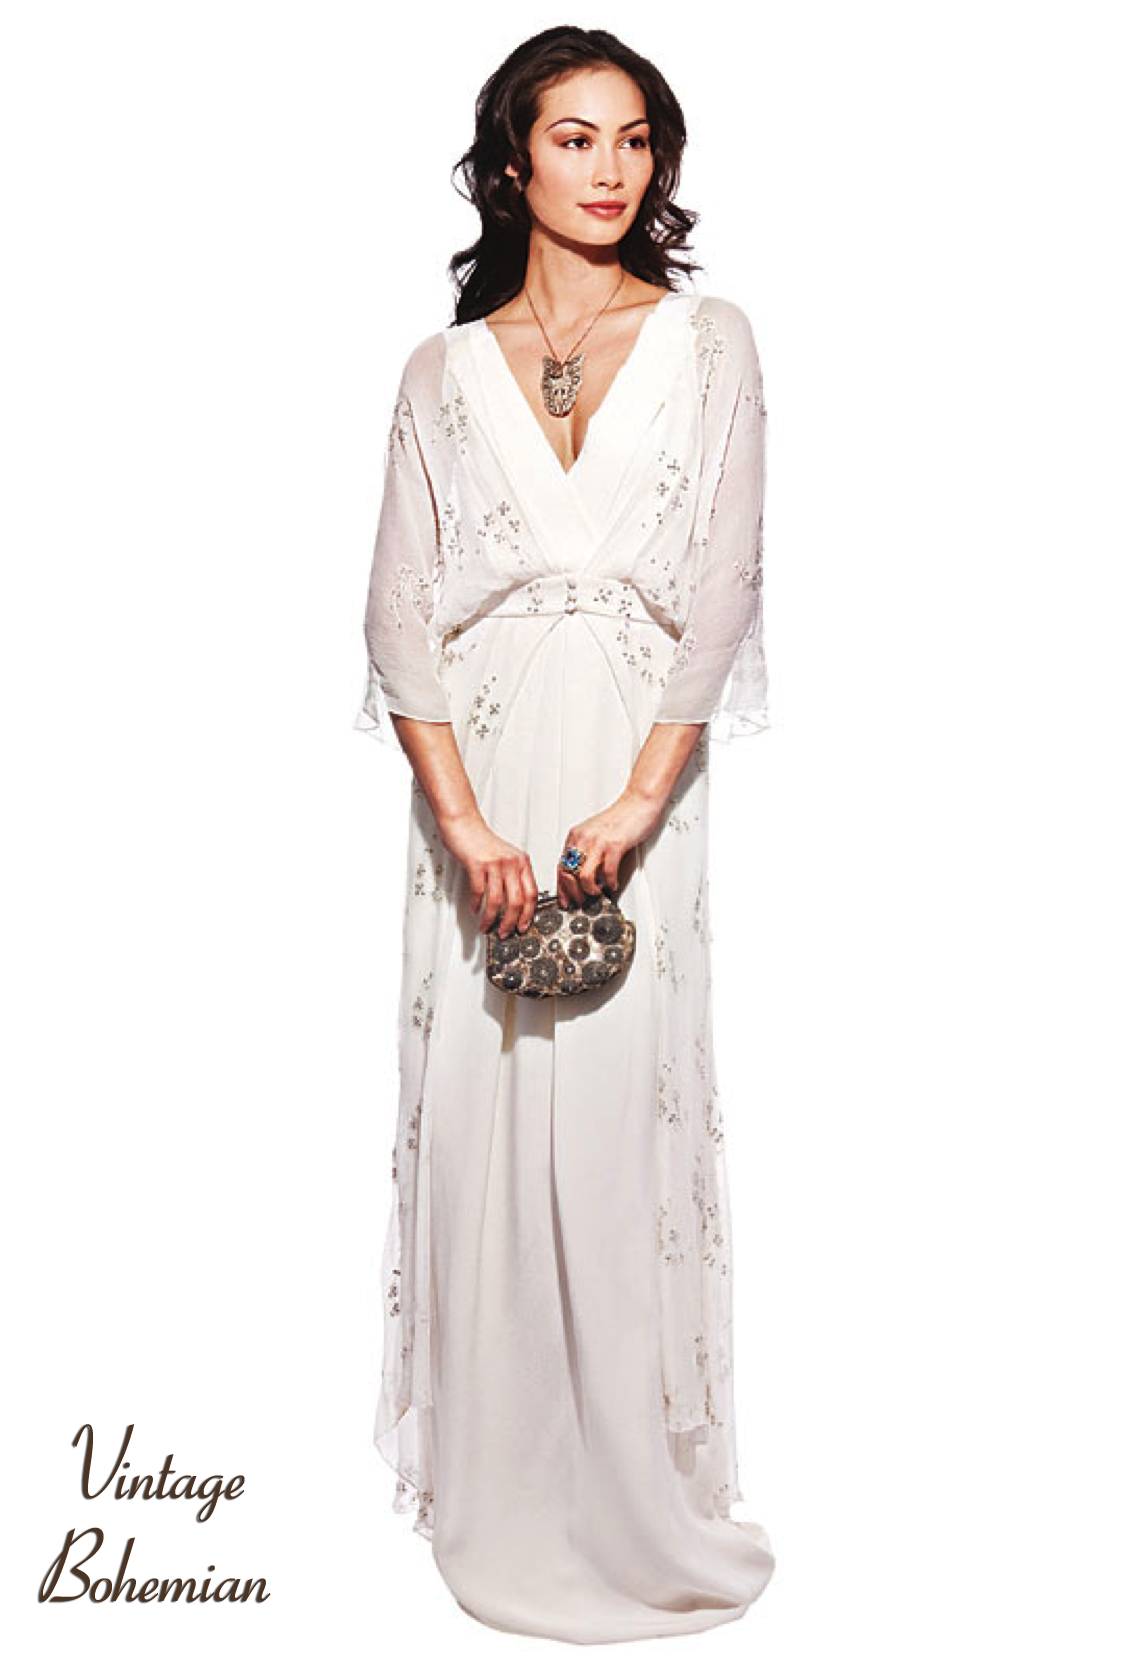 Wedding Dress Bohemian Bridal Gowns Vintage Chic Styles 13